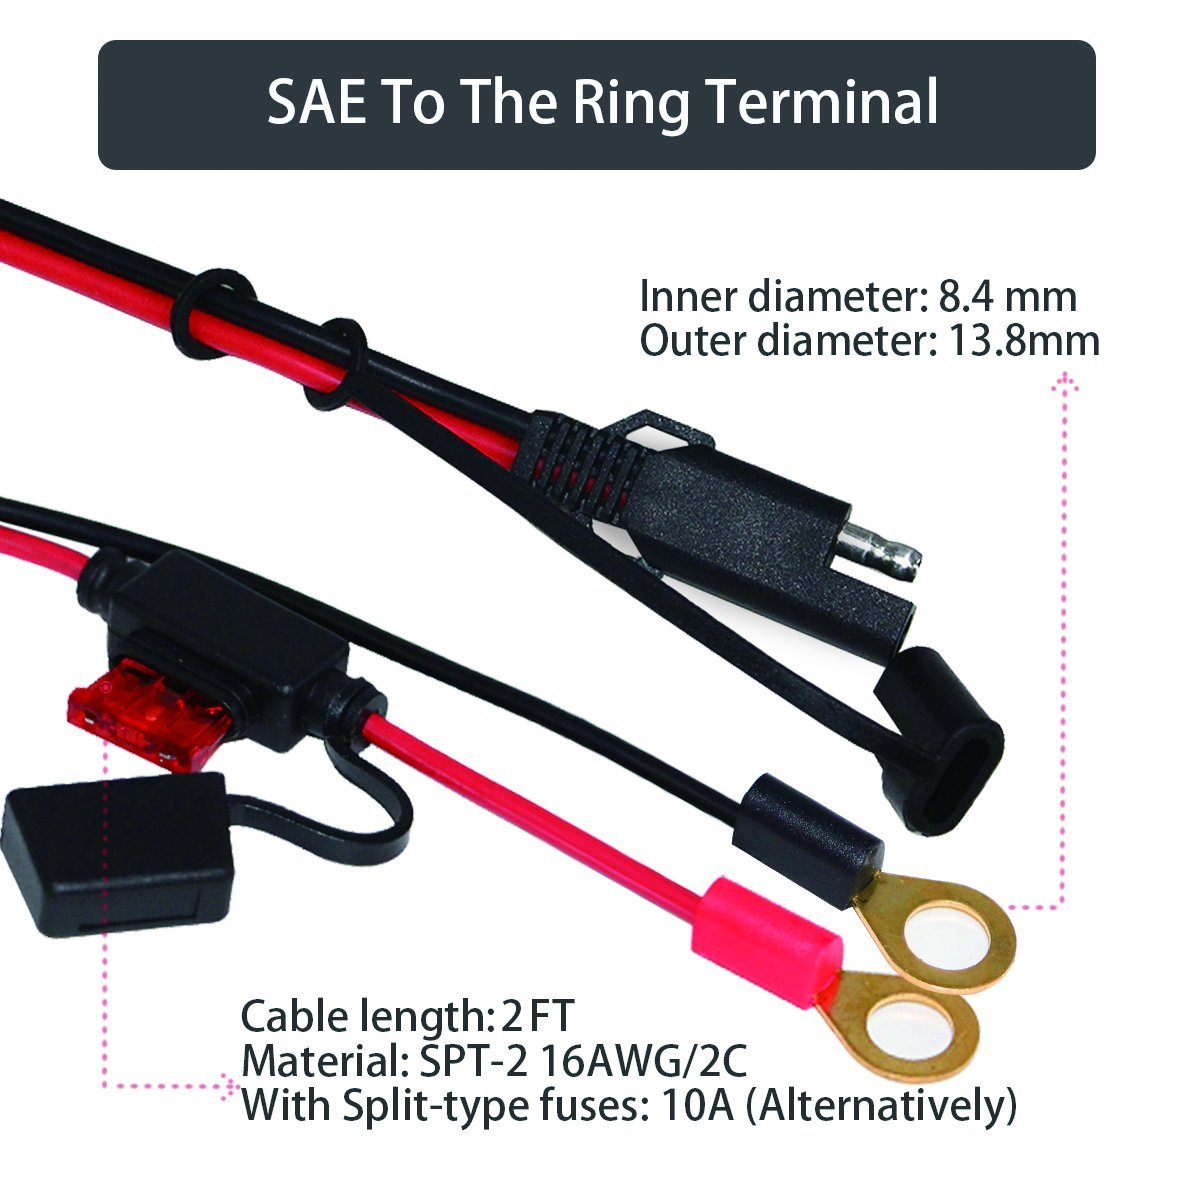 Ring Terminal Wiring Harness 2 Pin Quick Disconnect Plug Sae 12v Adapter Feet Cord Adaptor Cable Spt 216awg 2c Length Color Red Black With 10a Fused For Electrical Protection Fast And Easy To Connect